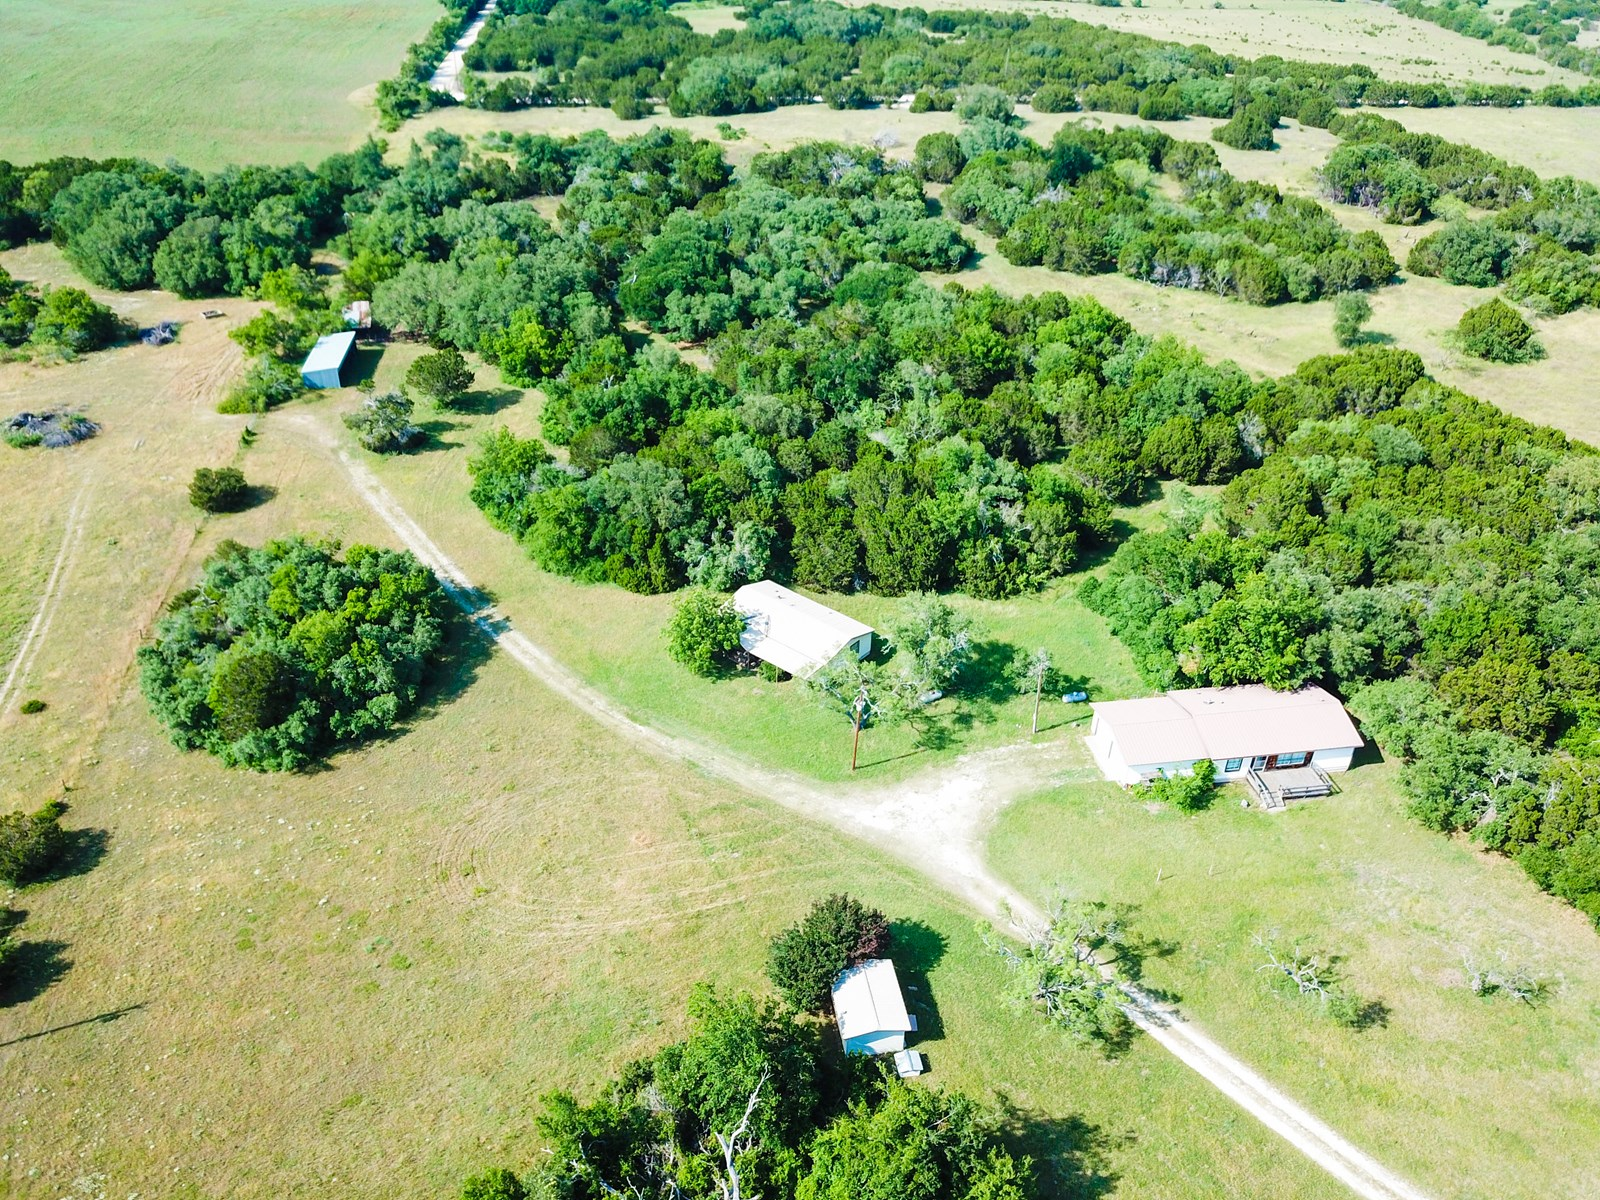 Land for Sale in Texas - 62+/- Acres in Hamilton County